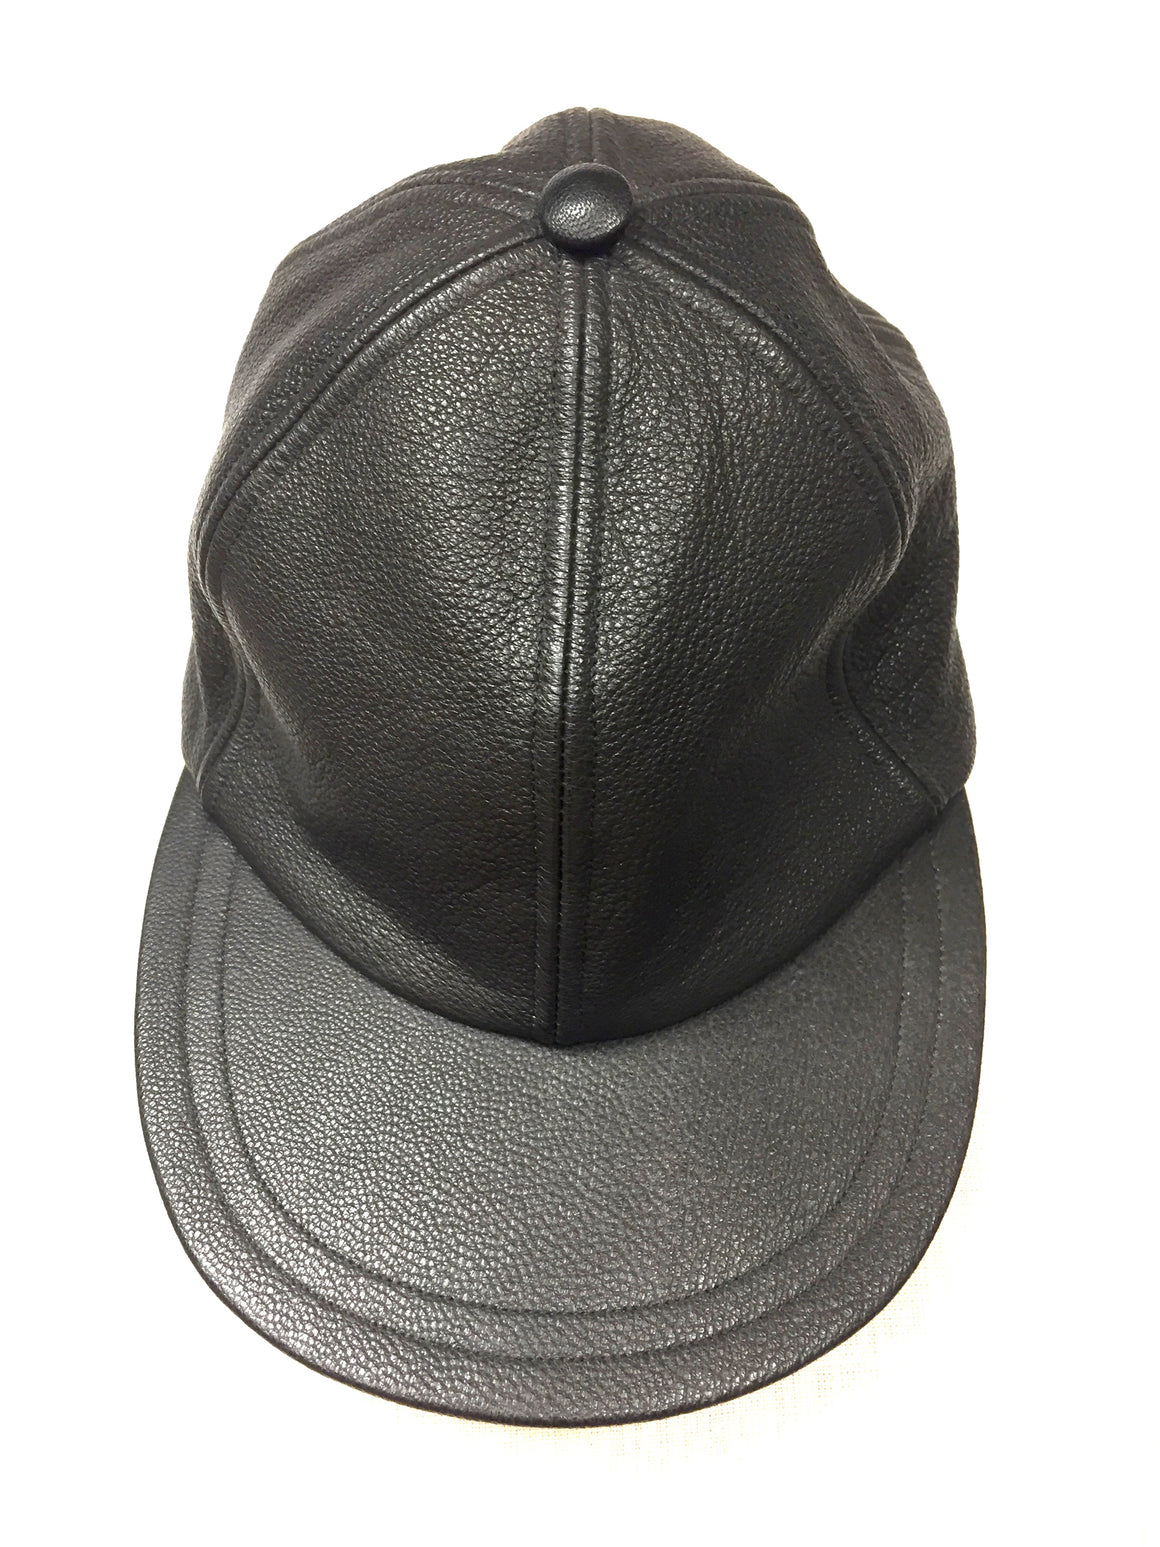 bisbiz.com EUGENIA KIM Black Caviar Leather Cap - Bis Luxury Resale